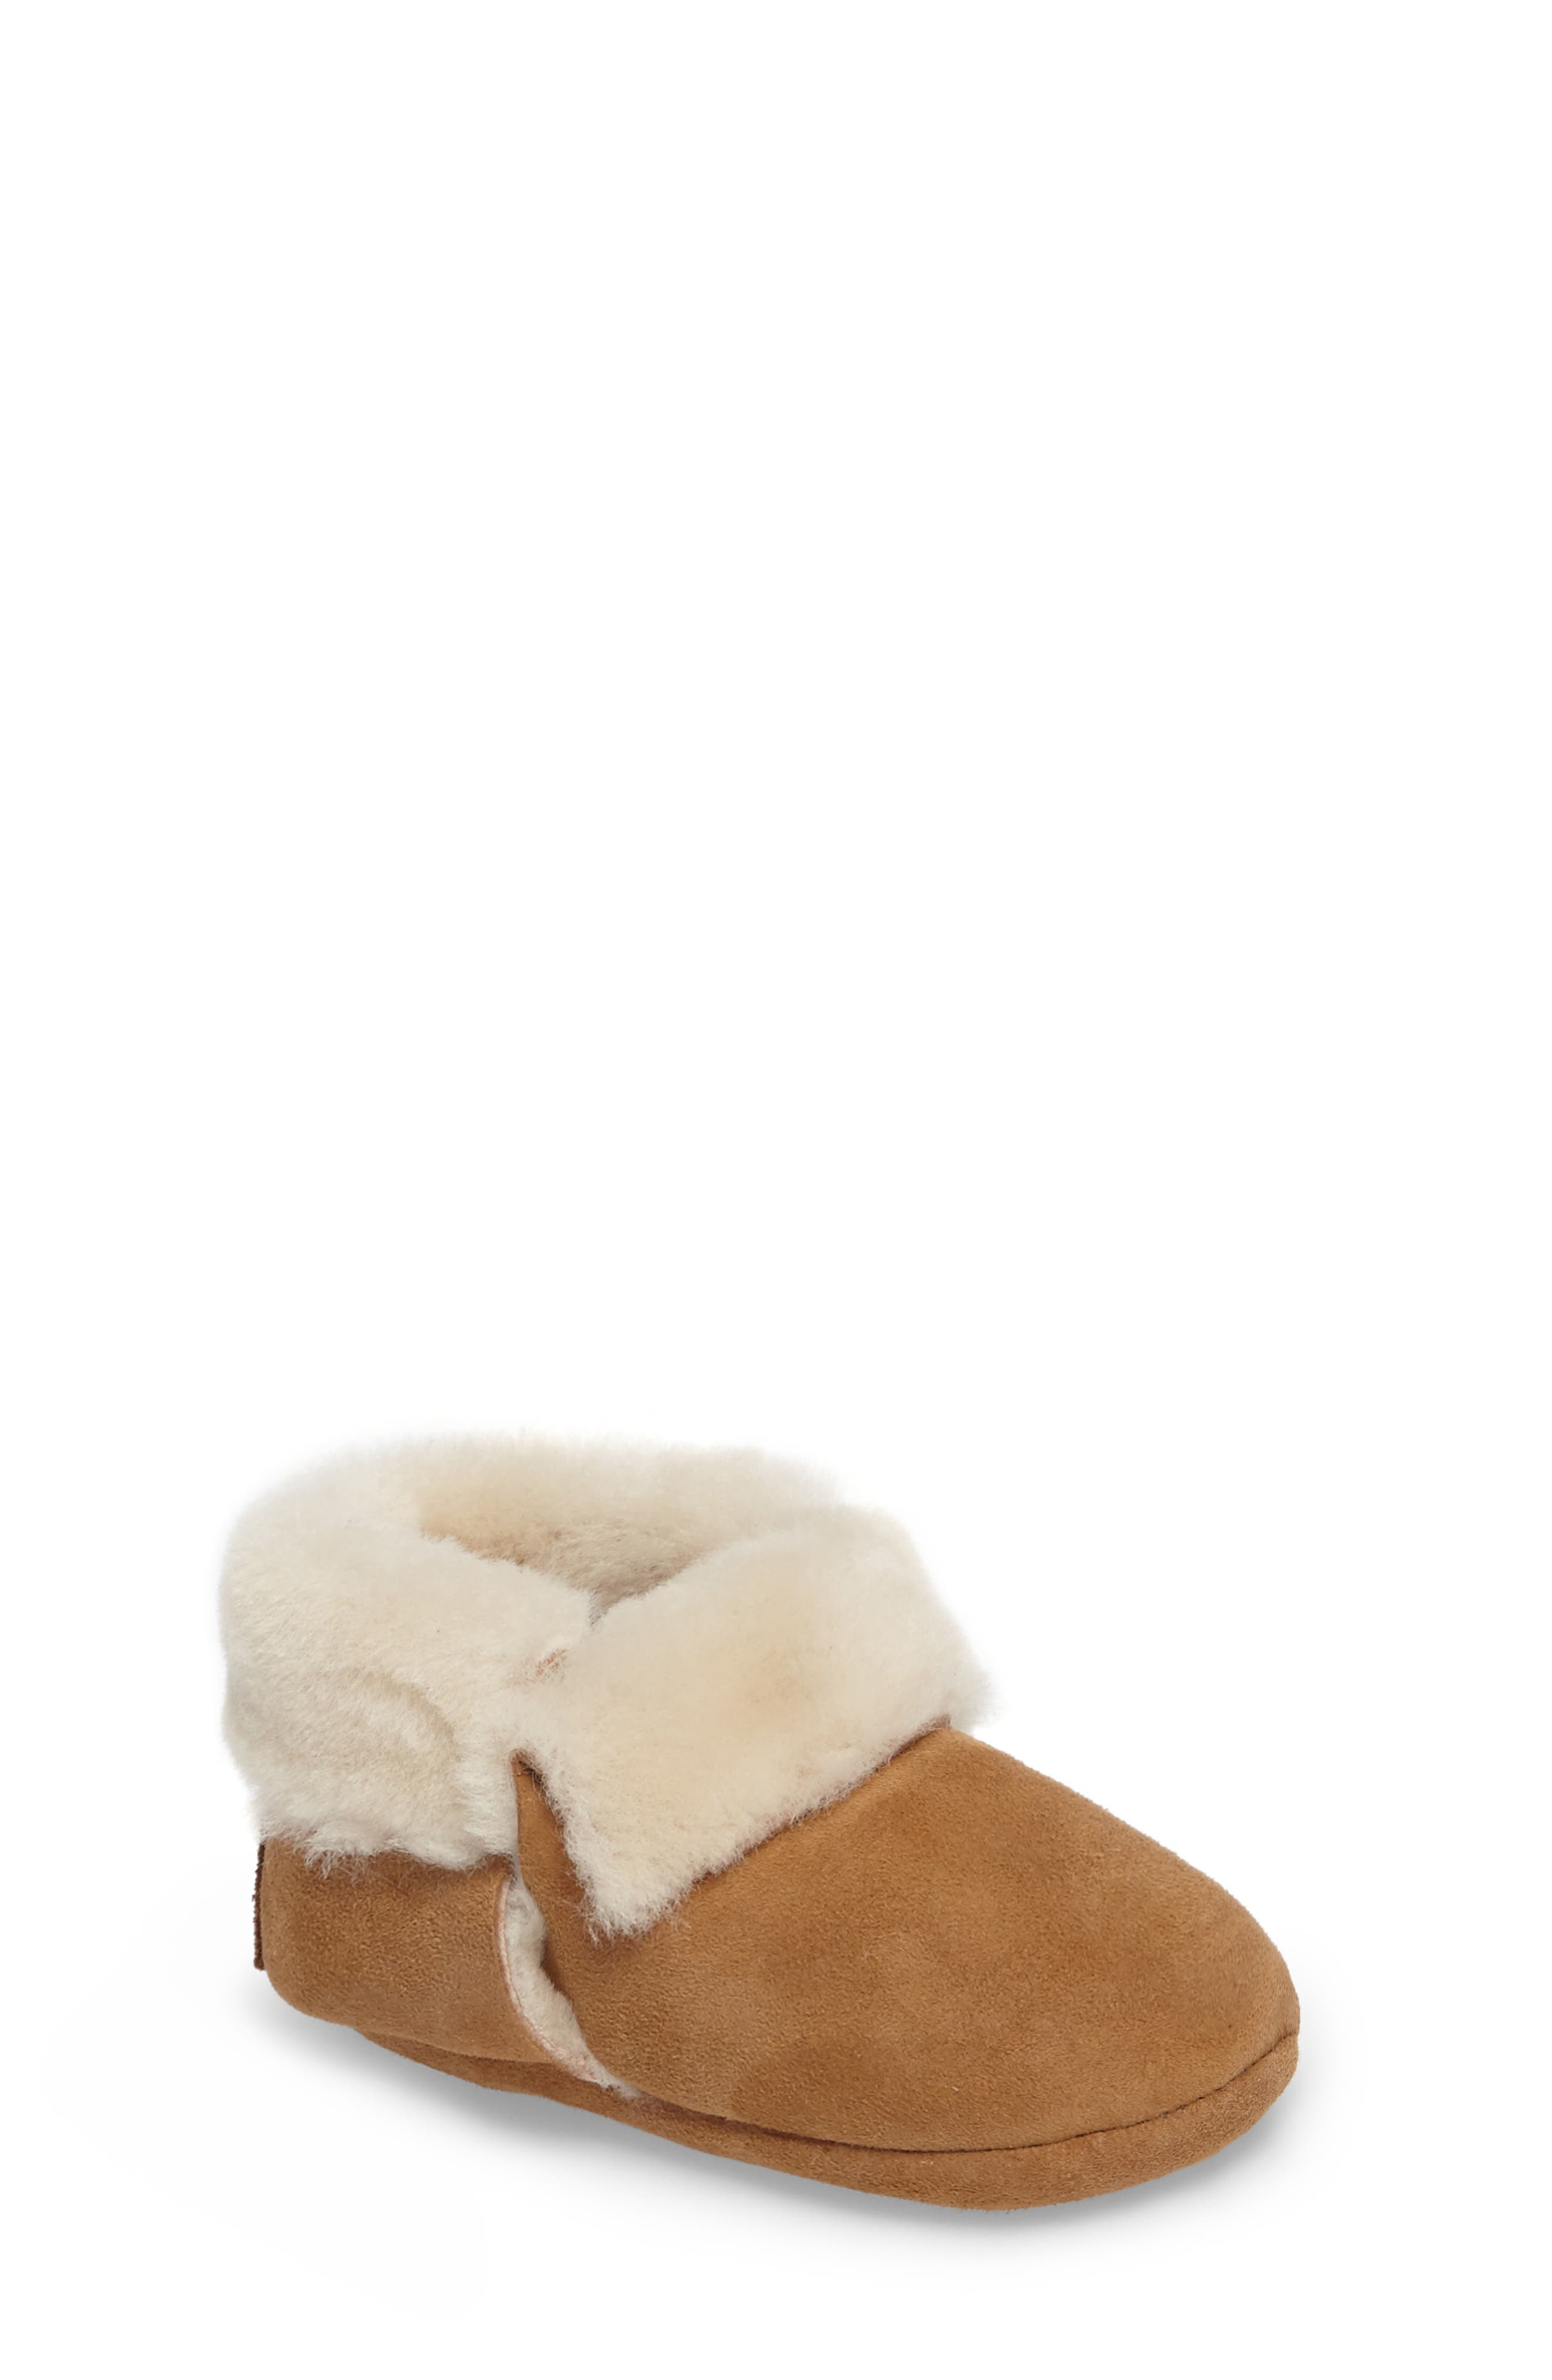 Solvi Genuine Shearling Low Cuffed Bootie,                             Main thumbnail 1, color,                             200